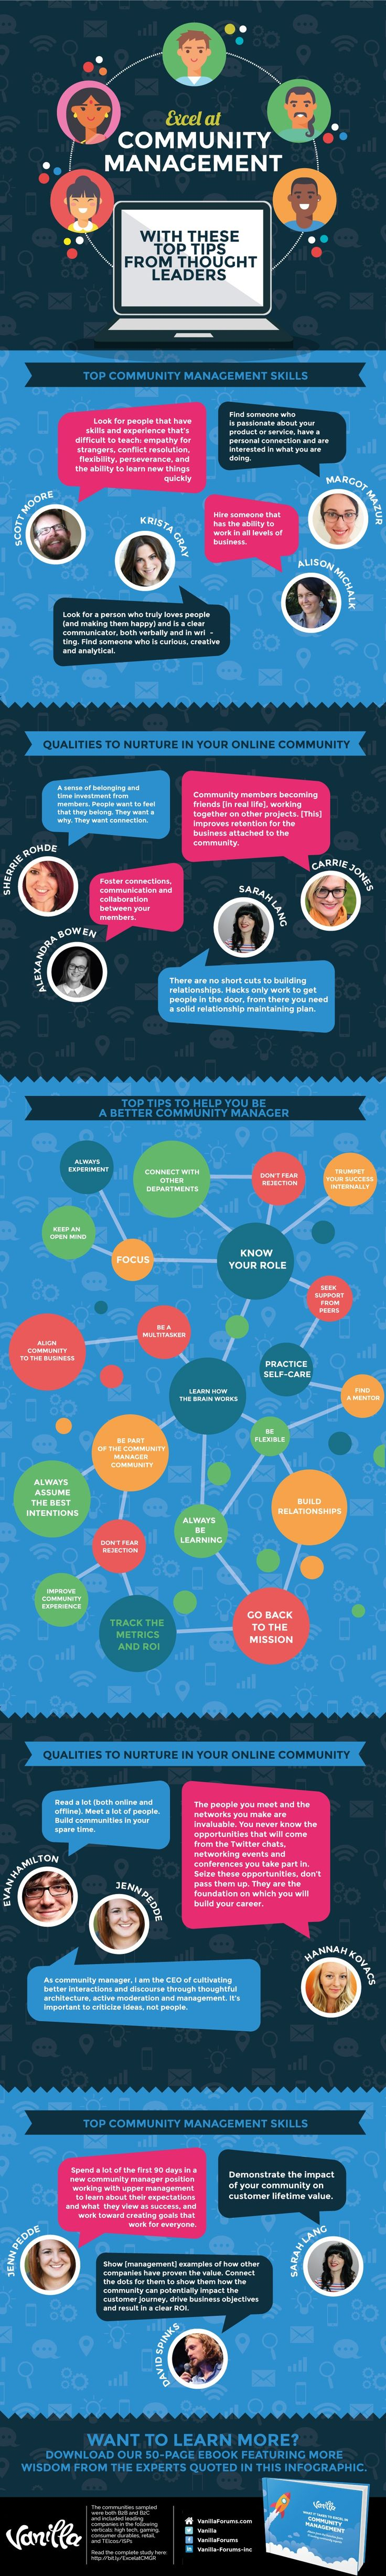 infographic: How to Become a Great Online Community Manager